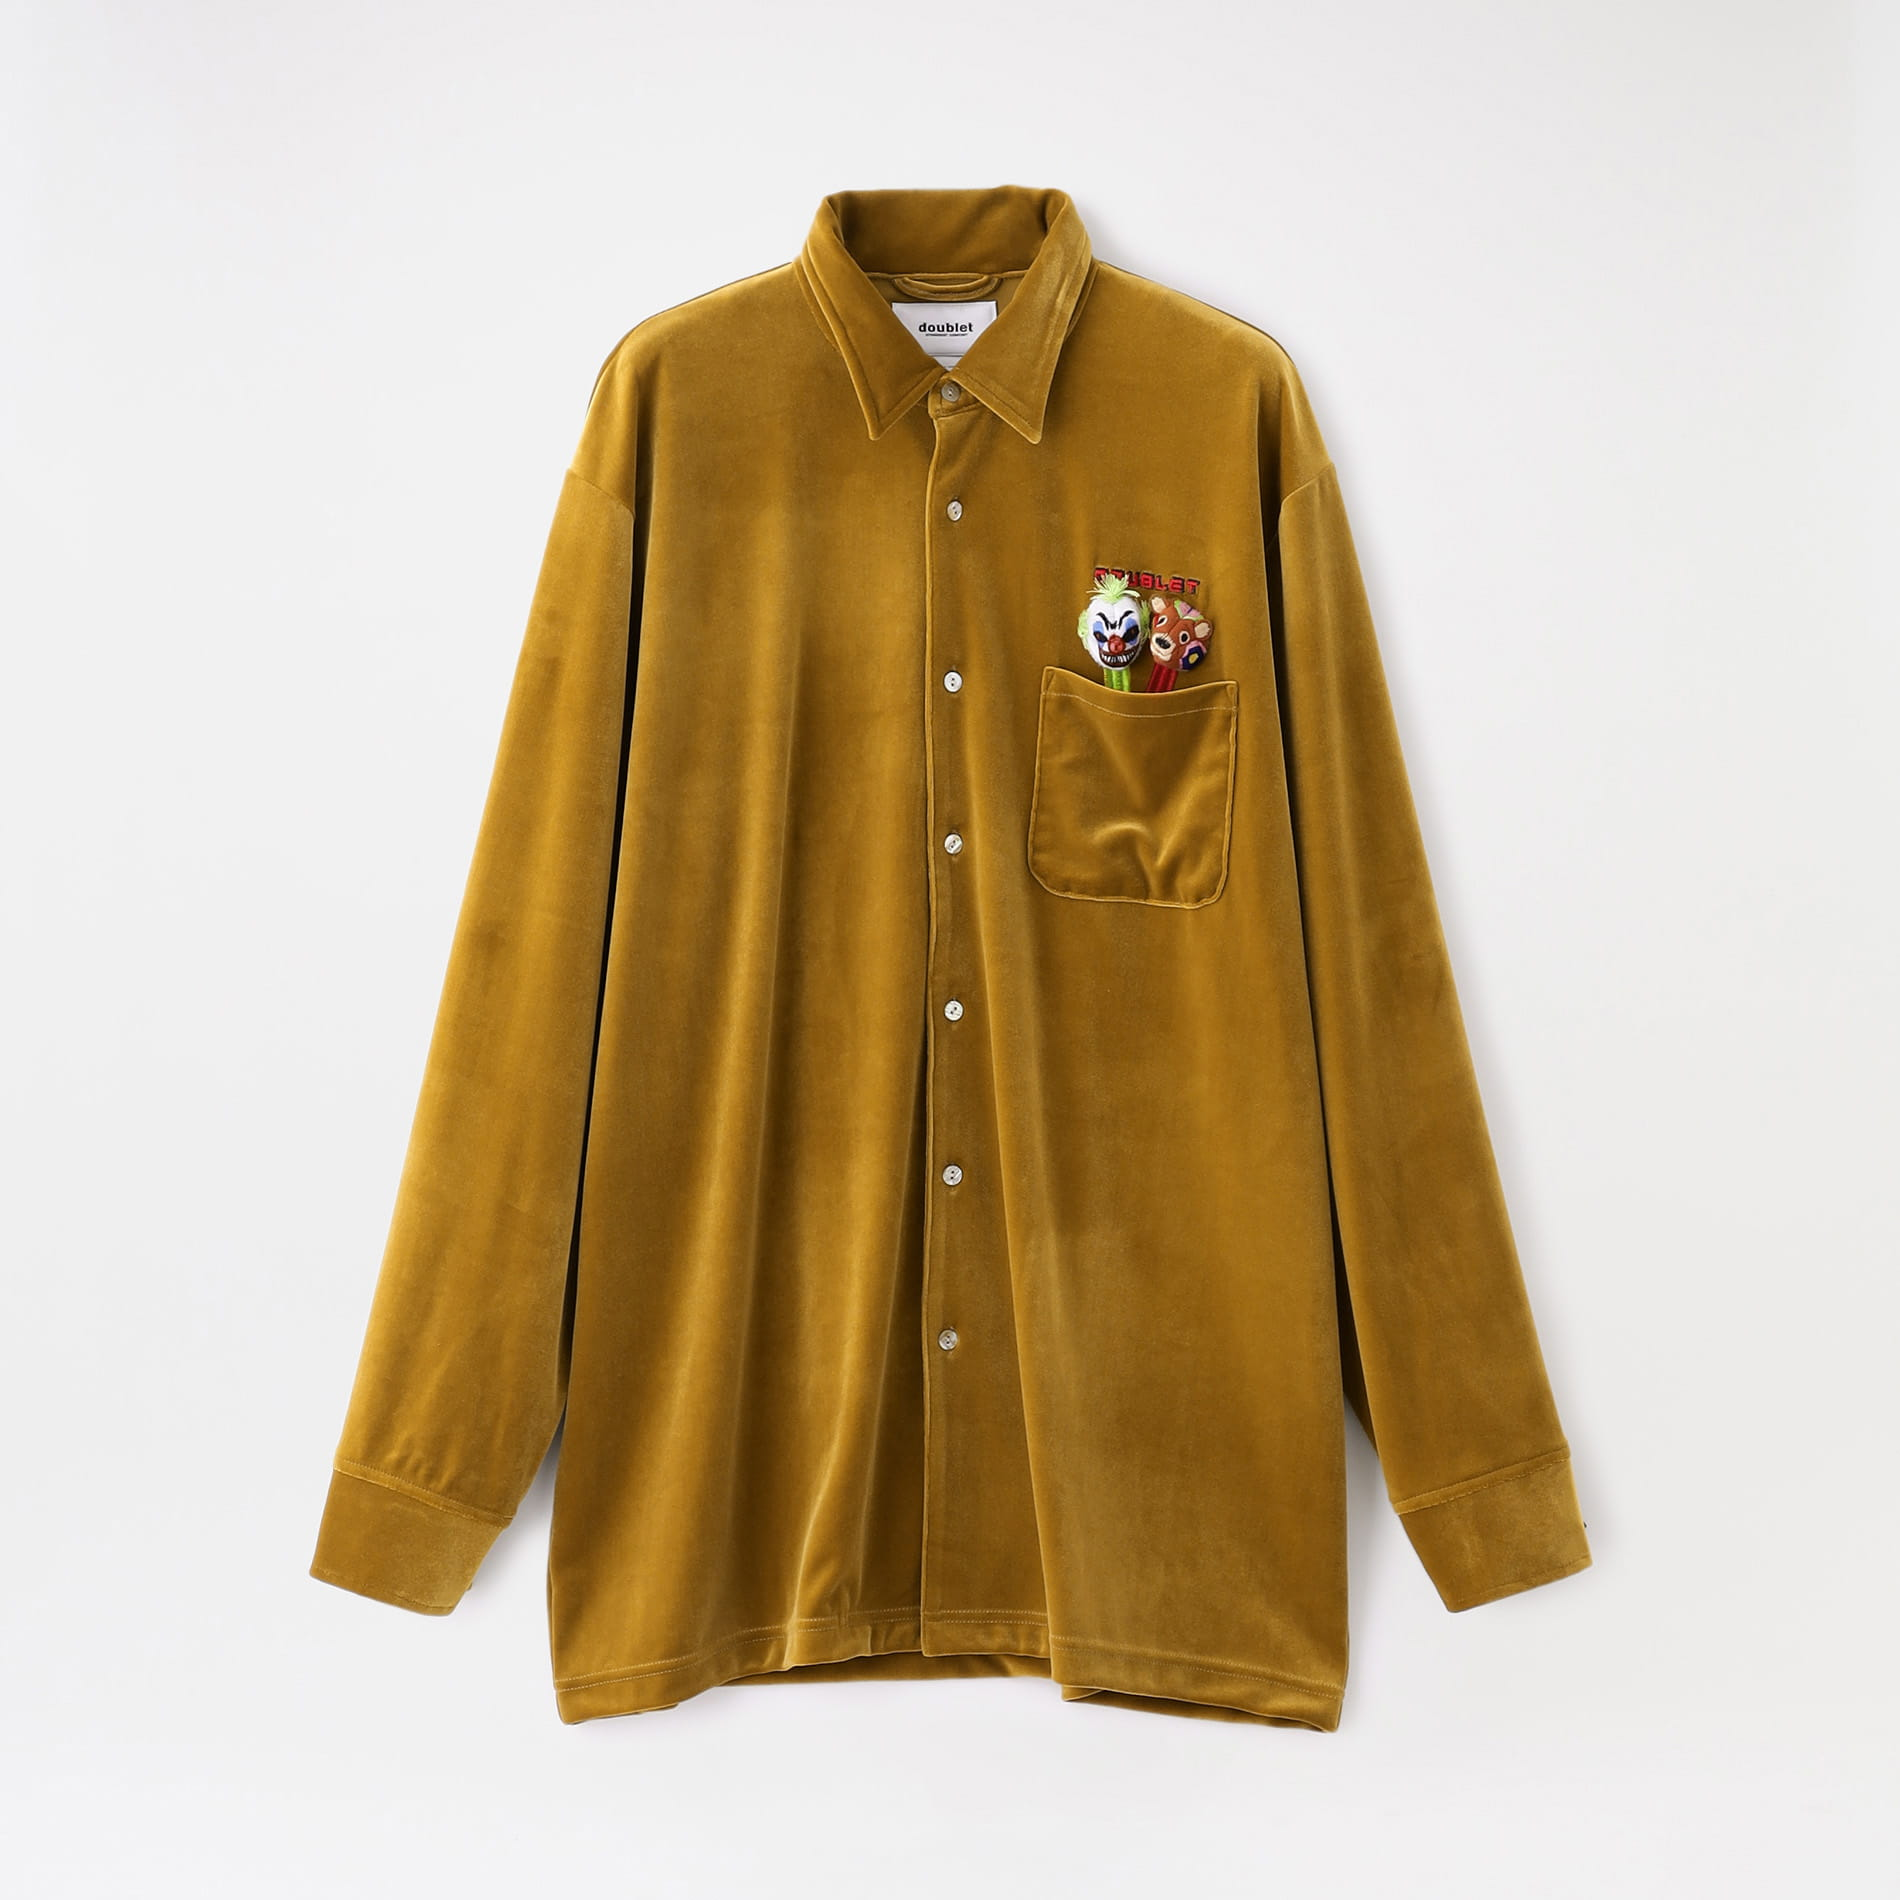 【doublet】MEN シャツ PUPPET EMBROIDERY VELOUR SHIRTS 21AW16SH98